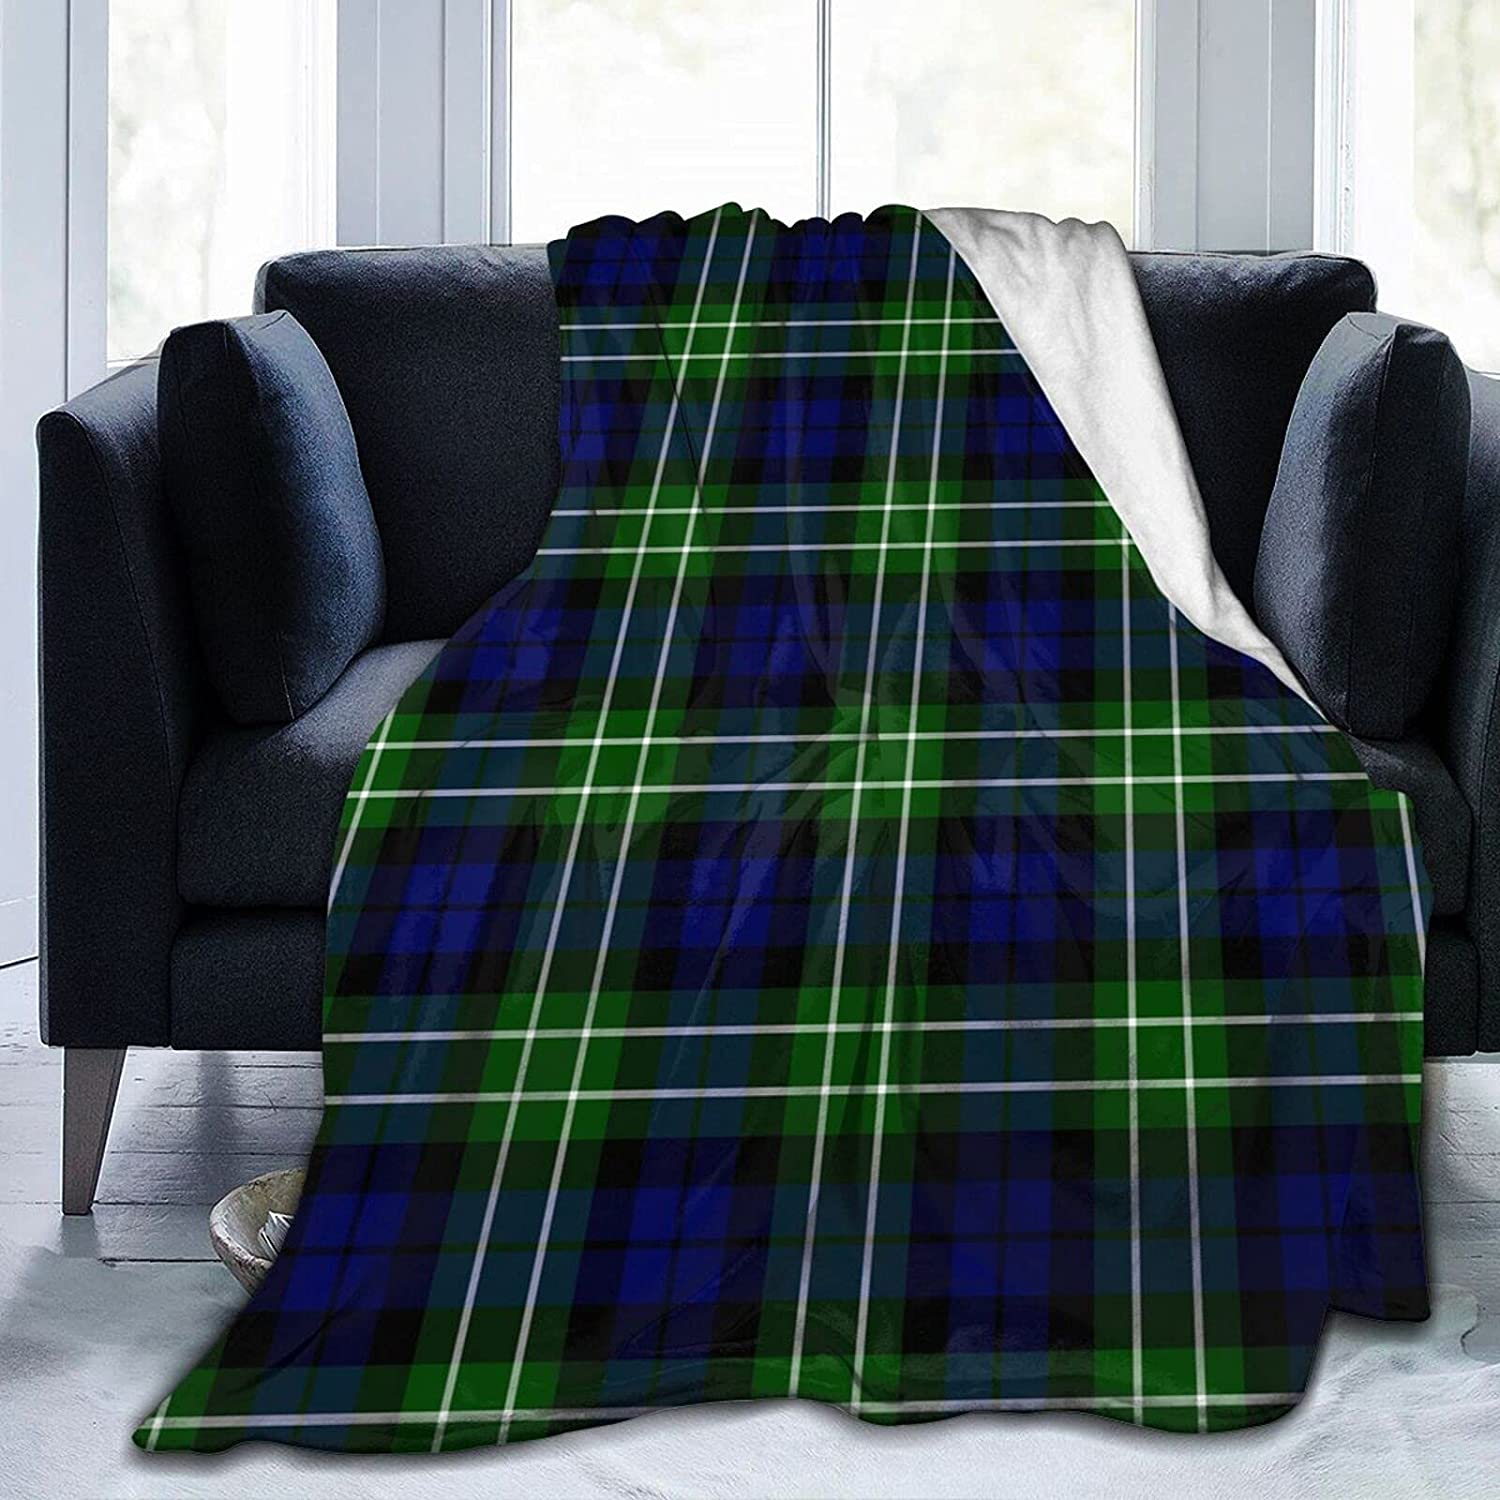 Max 85% OFF Throw Blanket Ultra-Soft Menteith Bl Tartan District Bed Max 72% OFF